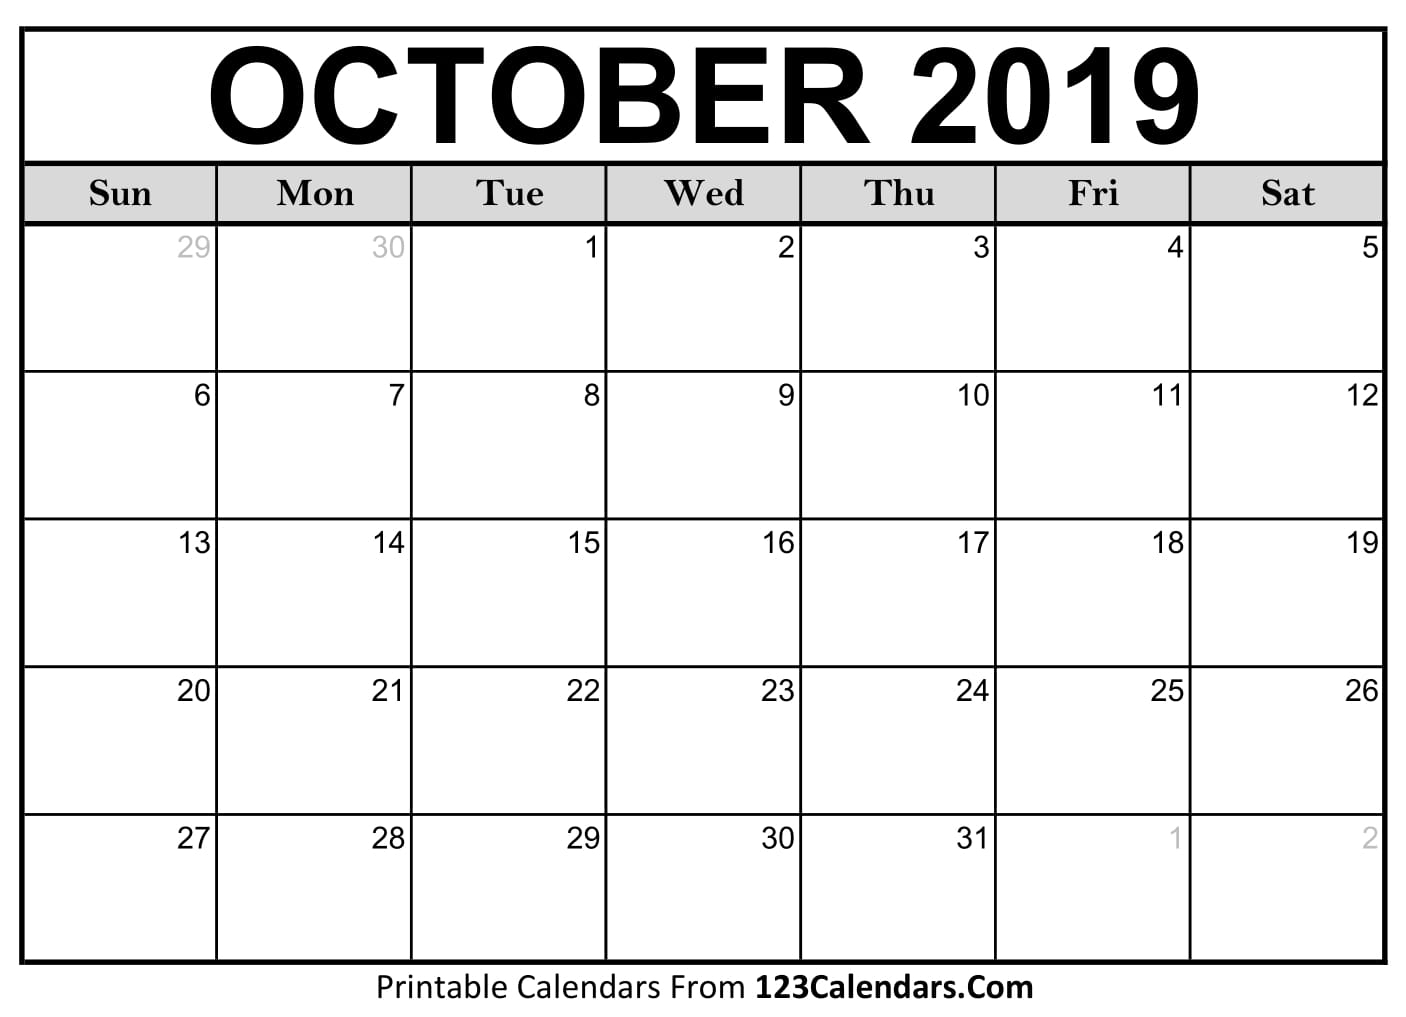 October 2019 Printable Calendar | 123Calendars with regard to Calendars Sept And October 2019